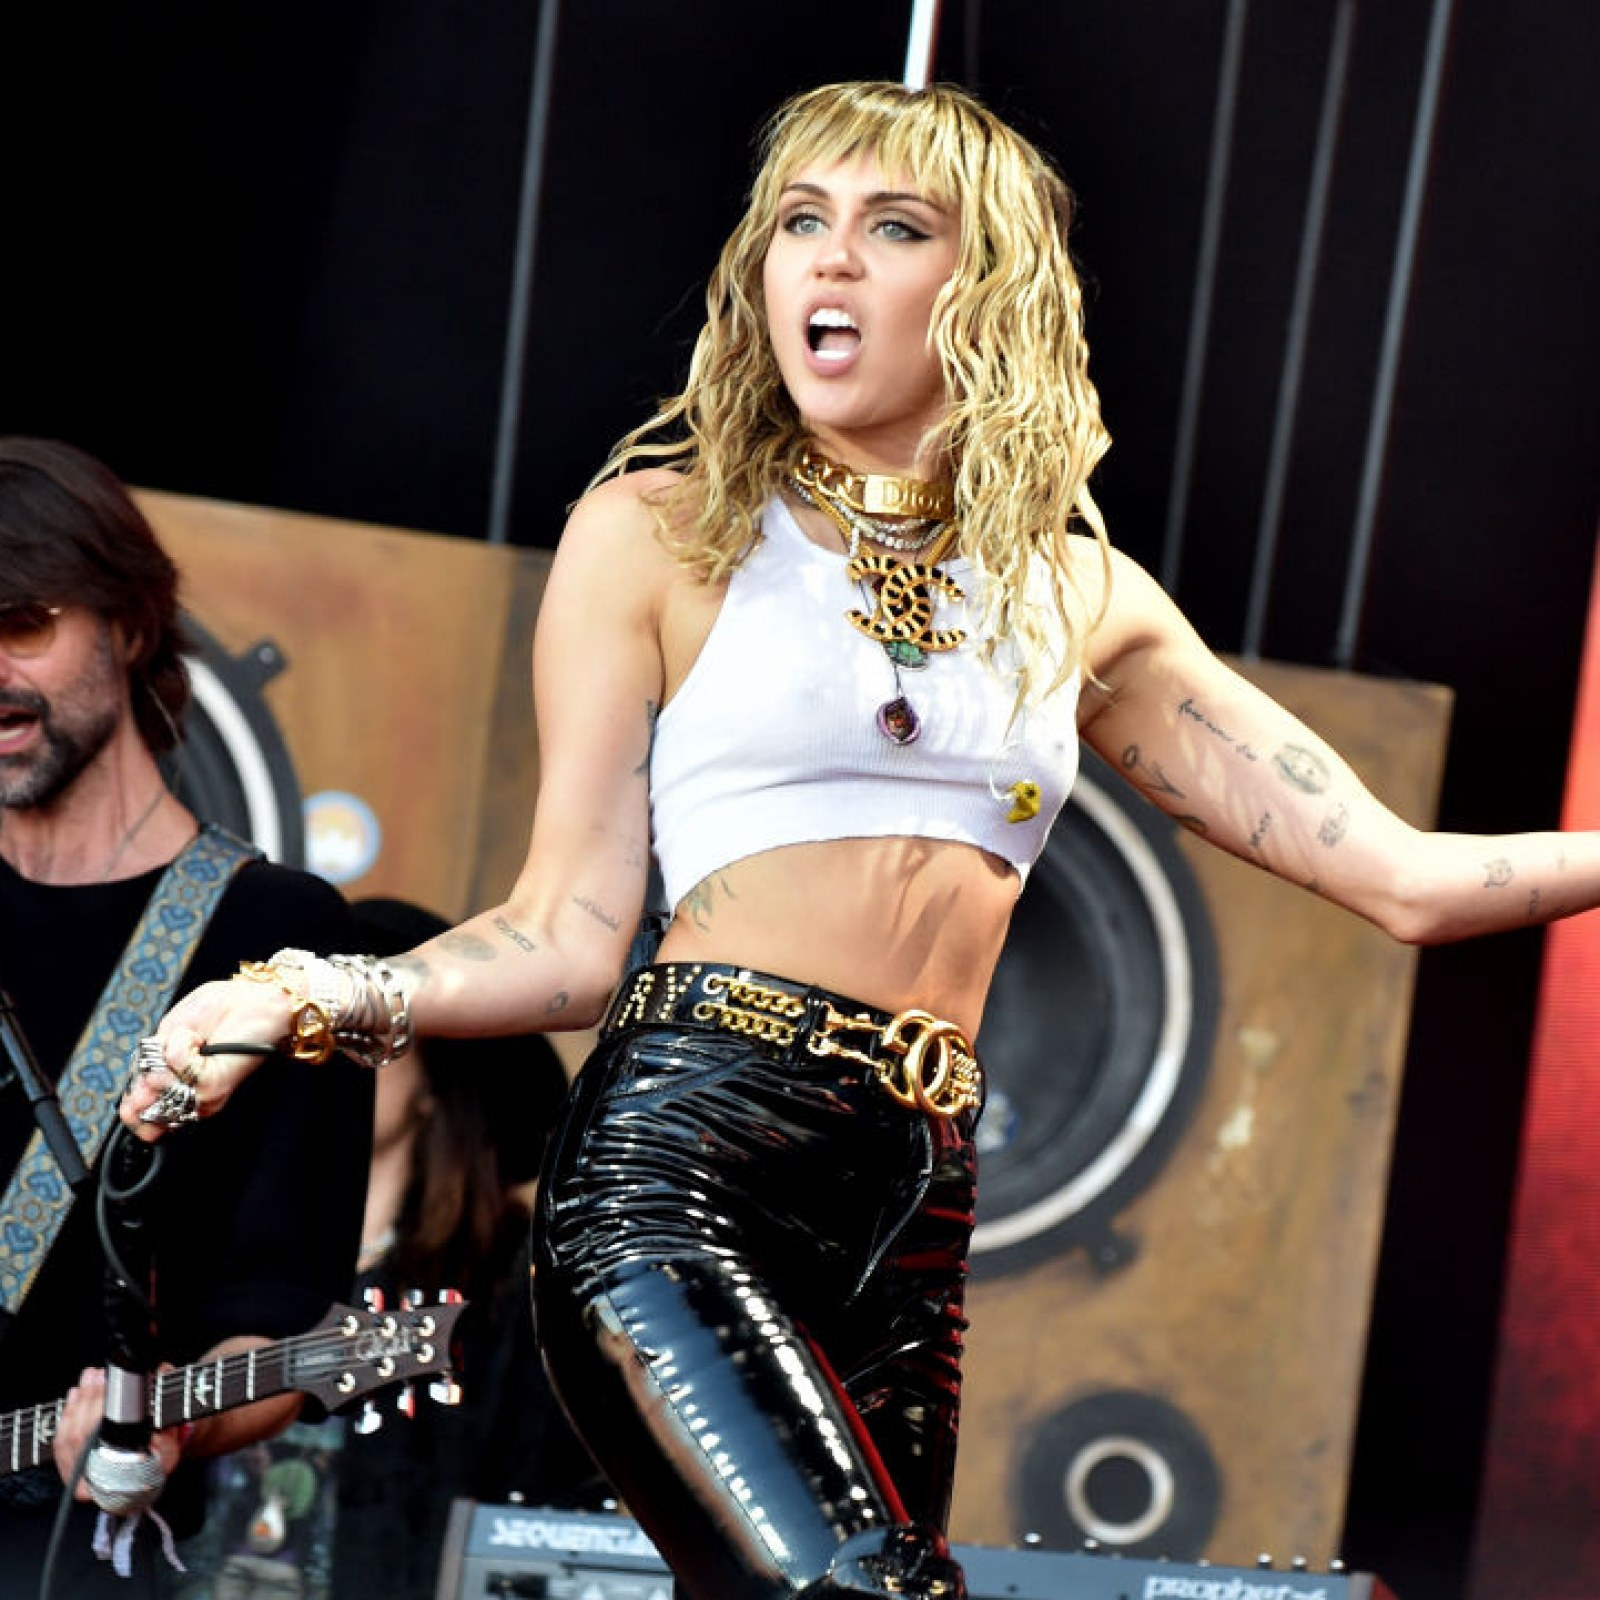 miley-cyrus-calls-her-marriage-unique-says-disneys-hannah-montana-made-her-feel-ridiculous.jpg?w=1600&h=1600&q=88&f=b8cf59e90c3dc4ce9ce7c8057c272a69